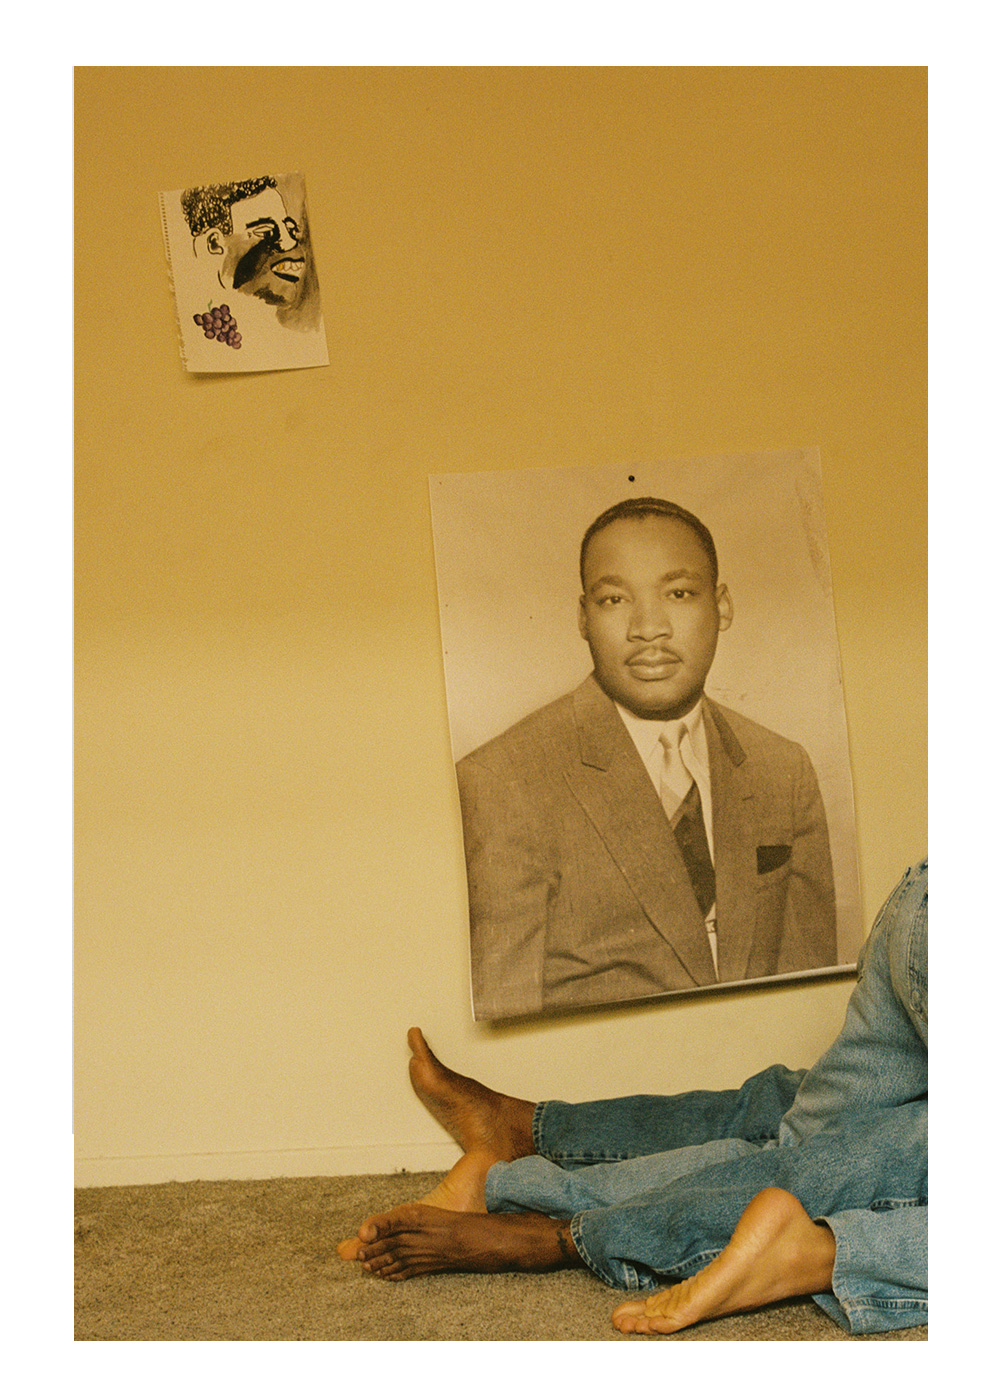 A photograph in a room with a yellow wall and a taupe-colored carpeted floor. There are two prints on the wall. One print is of Martin Luther King Jr. wearing a suit and tie. The other is an abstract rendering of a figure's face with a bunch of grapes in the lower left-hand corner. In the bottom right of the photograph, there are two intertwined pairs of legs clad in jeans and barefoot. One of the figures appears to be on their knees, while the other figure appears to be on their back.